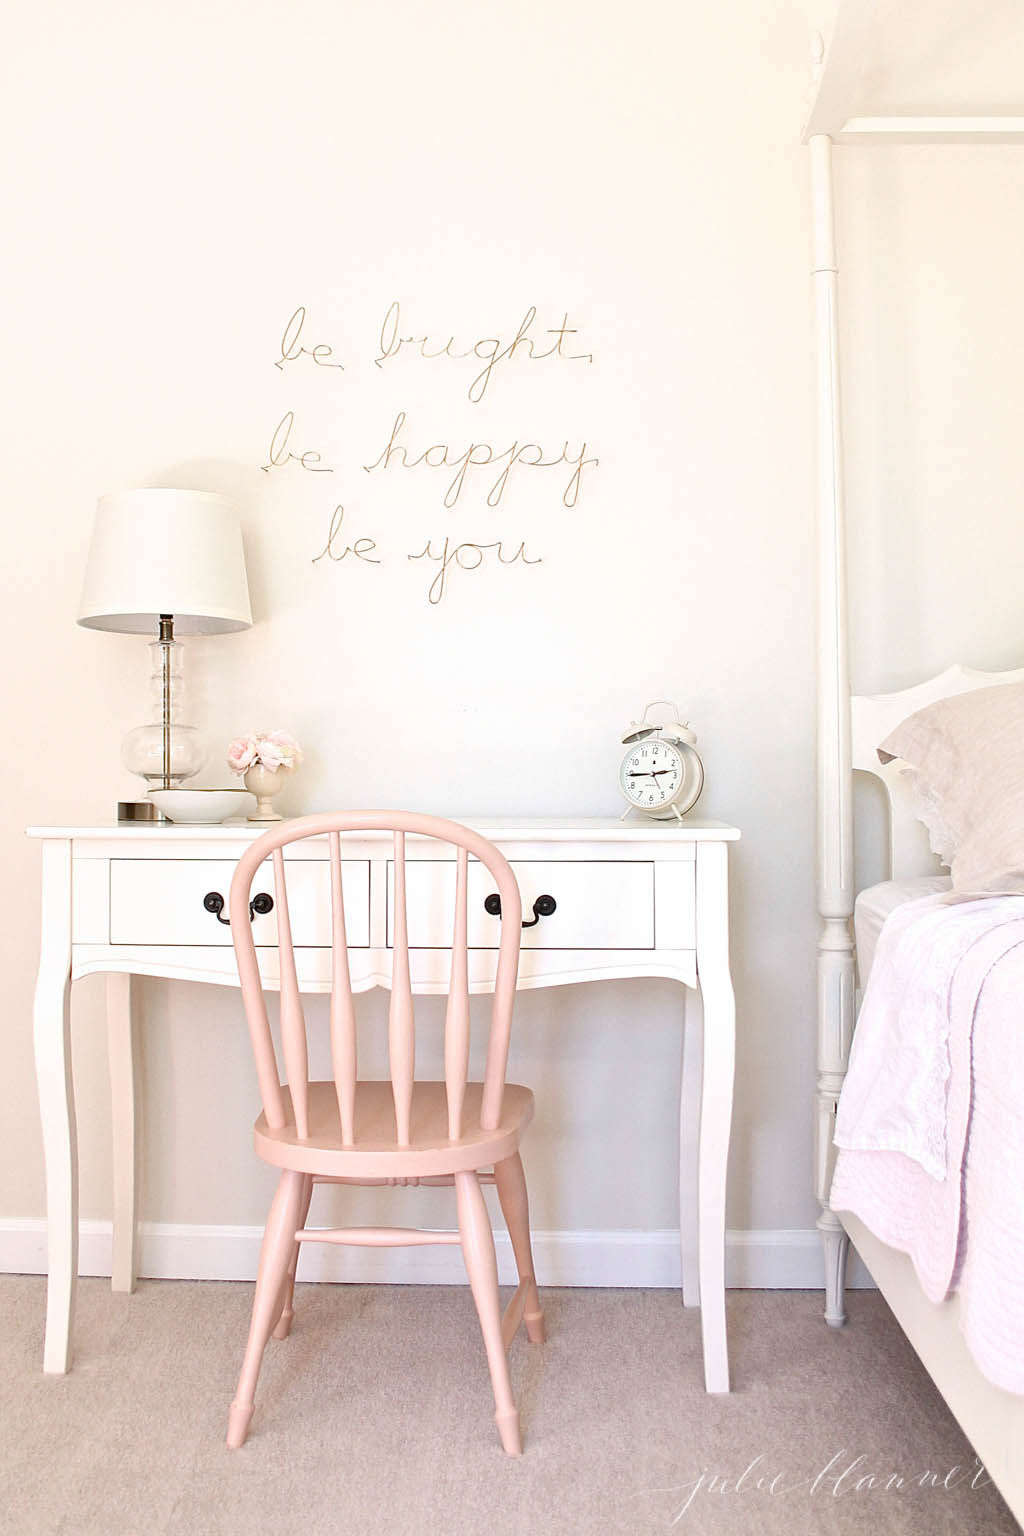 Happily Ever After, Etc. Julie Blanner Girls Room